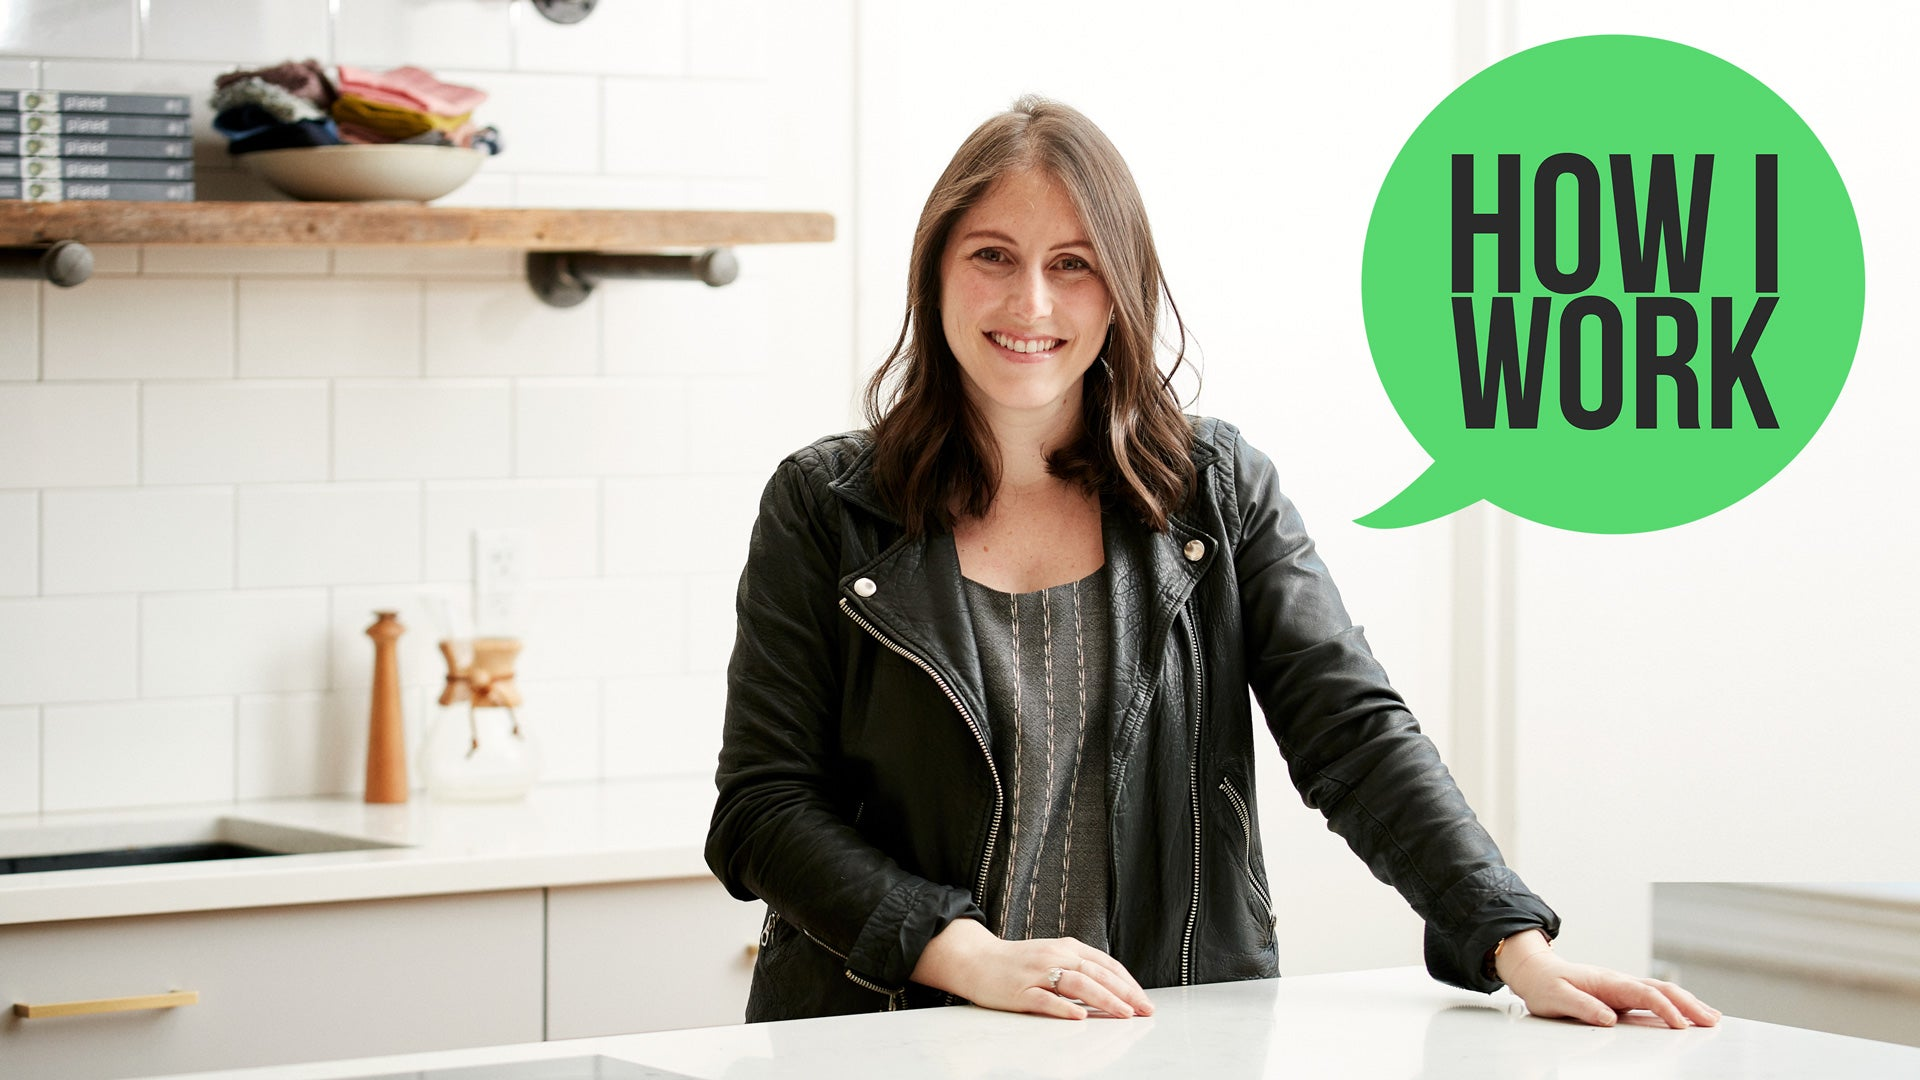 I'm Elana Karp, Head Chef At Plated, And This Is How I Work